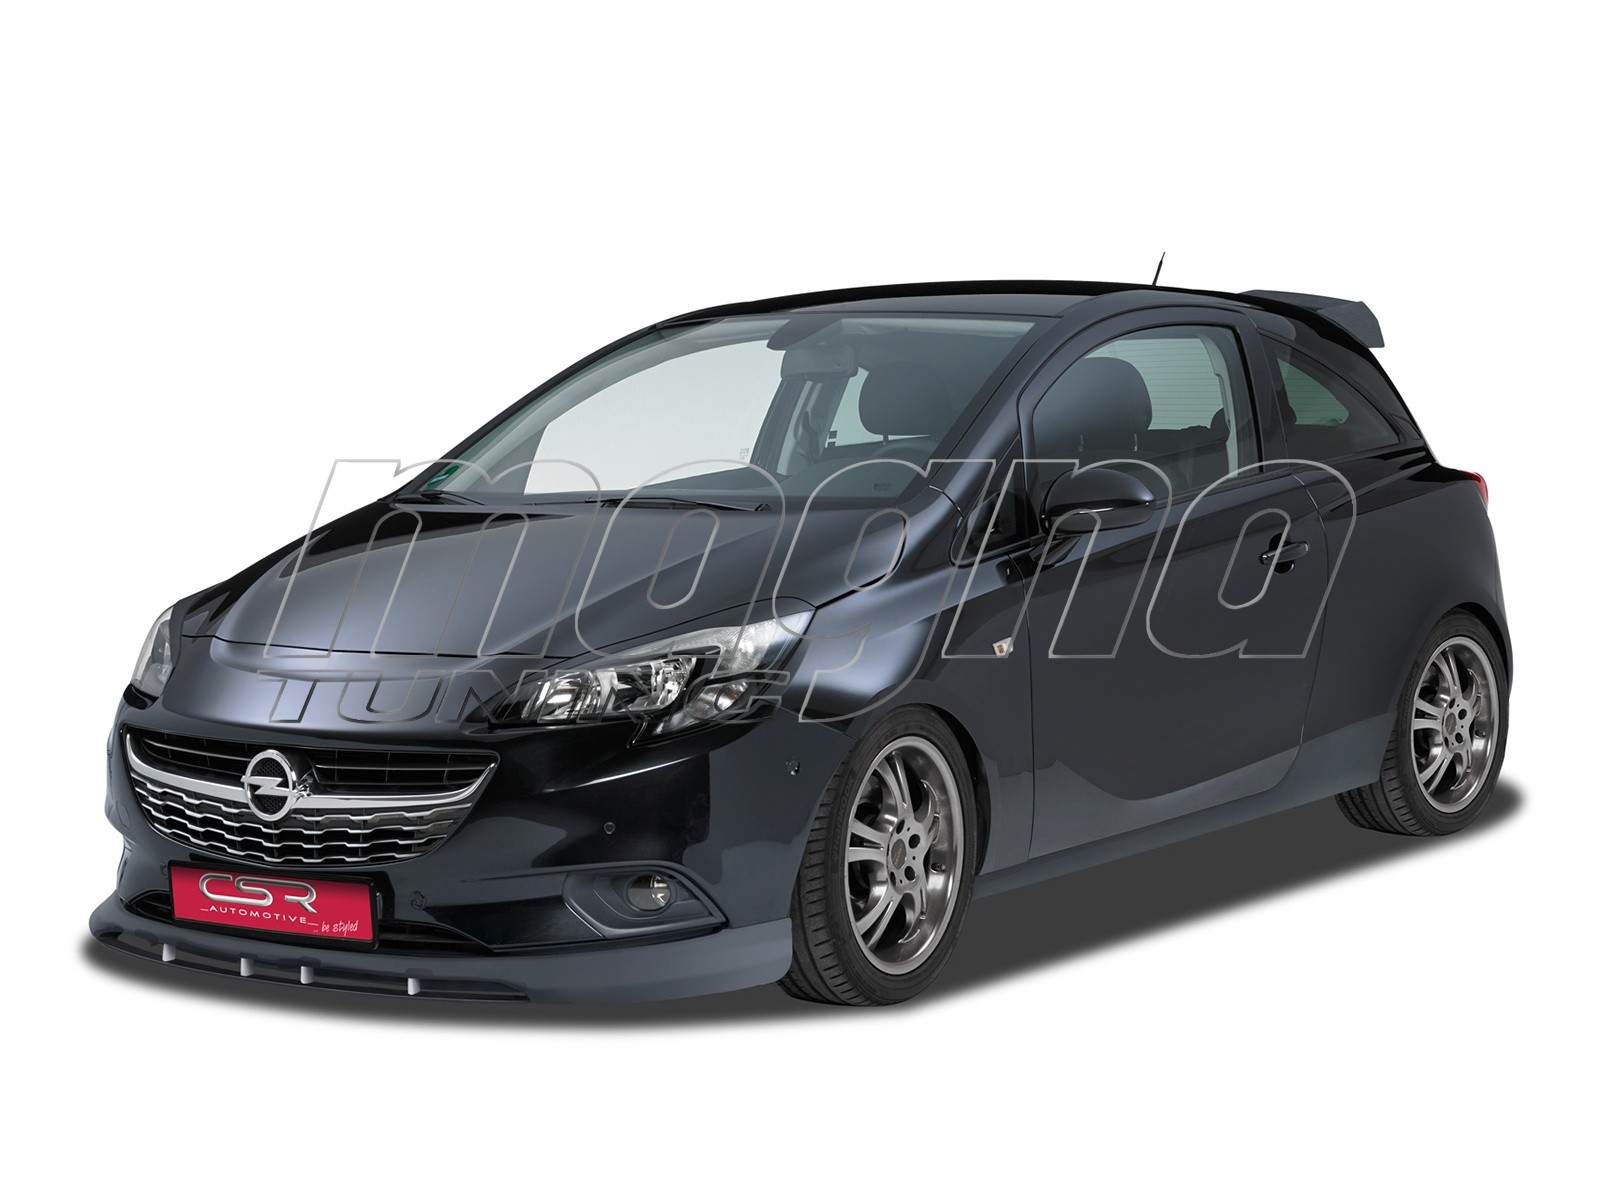 opel corsa e crono body kit. Black Bedroom Furniture Sets. Home Design Ideas